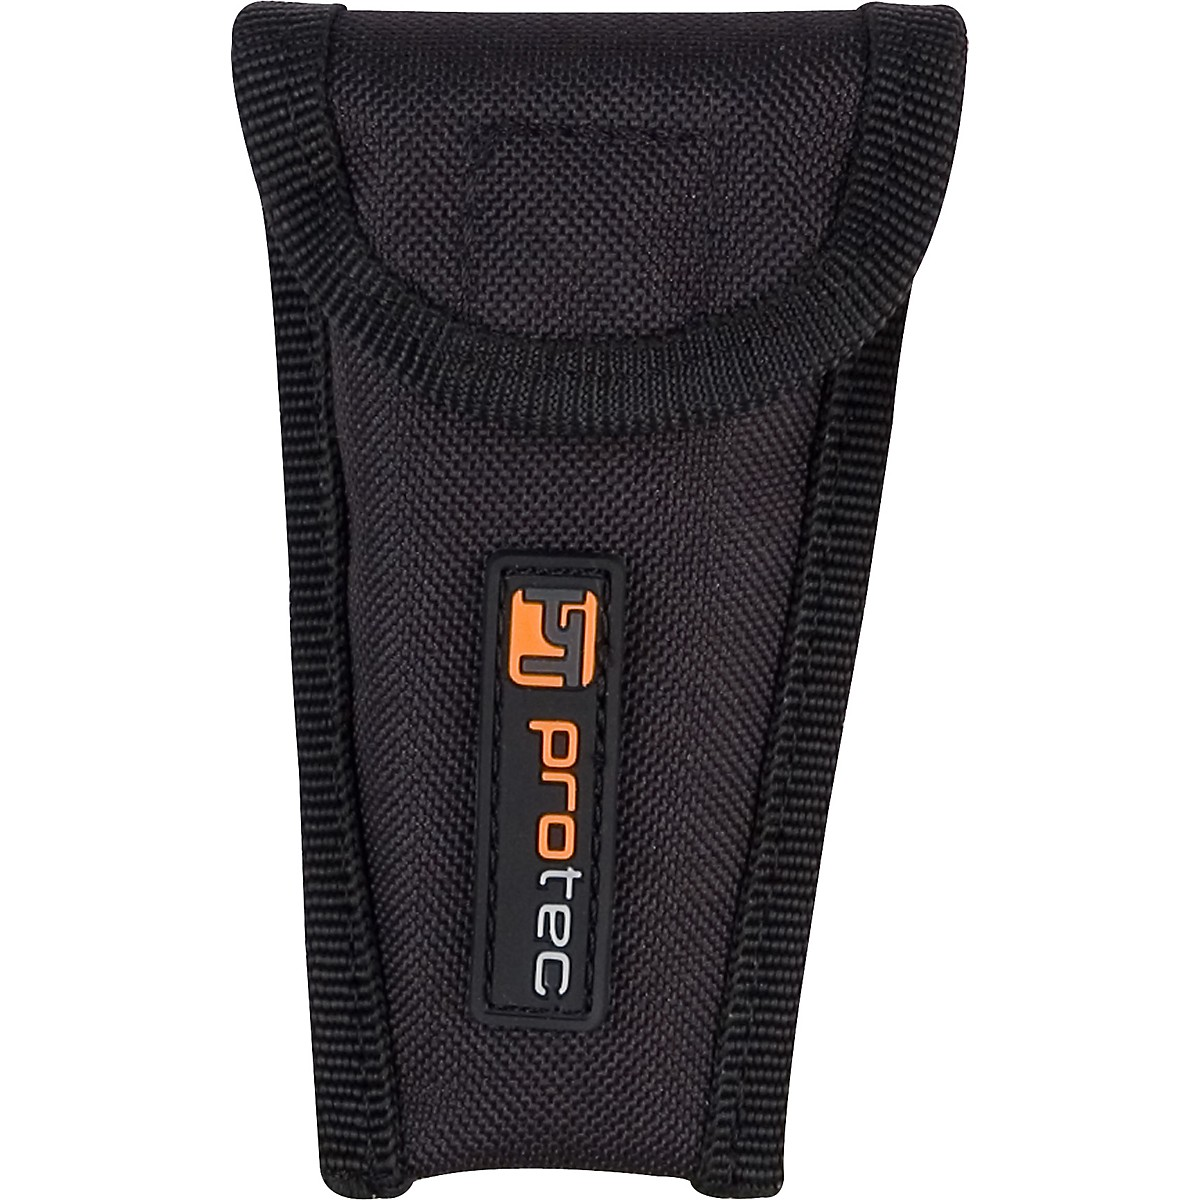 Protec A203 Deluxe Small Brass Padded Mouthpiece Pouch